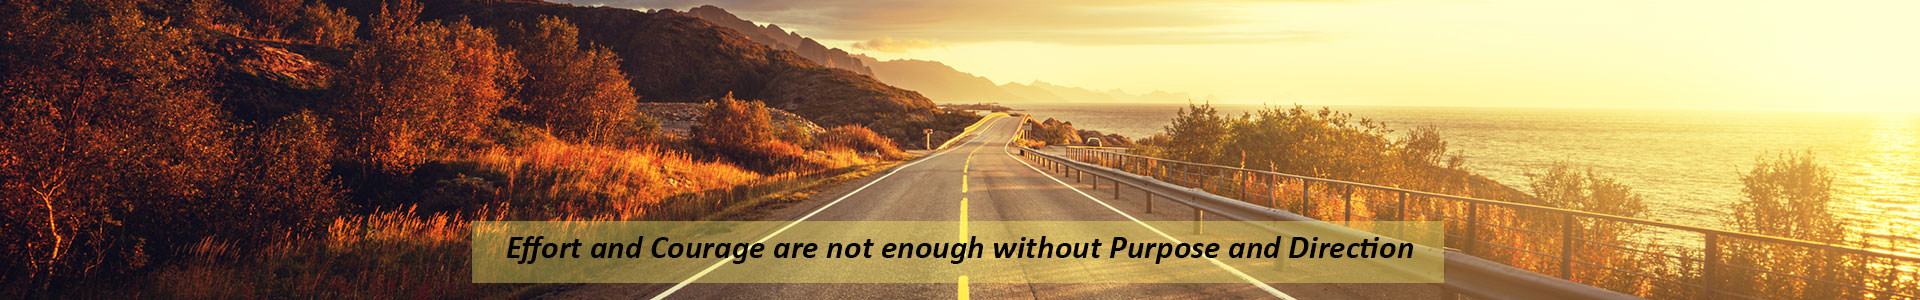 Road next to lake at sunset with quote Effort and Courage are not enough without Purpose and Direction